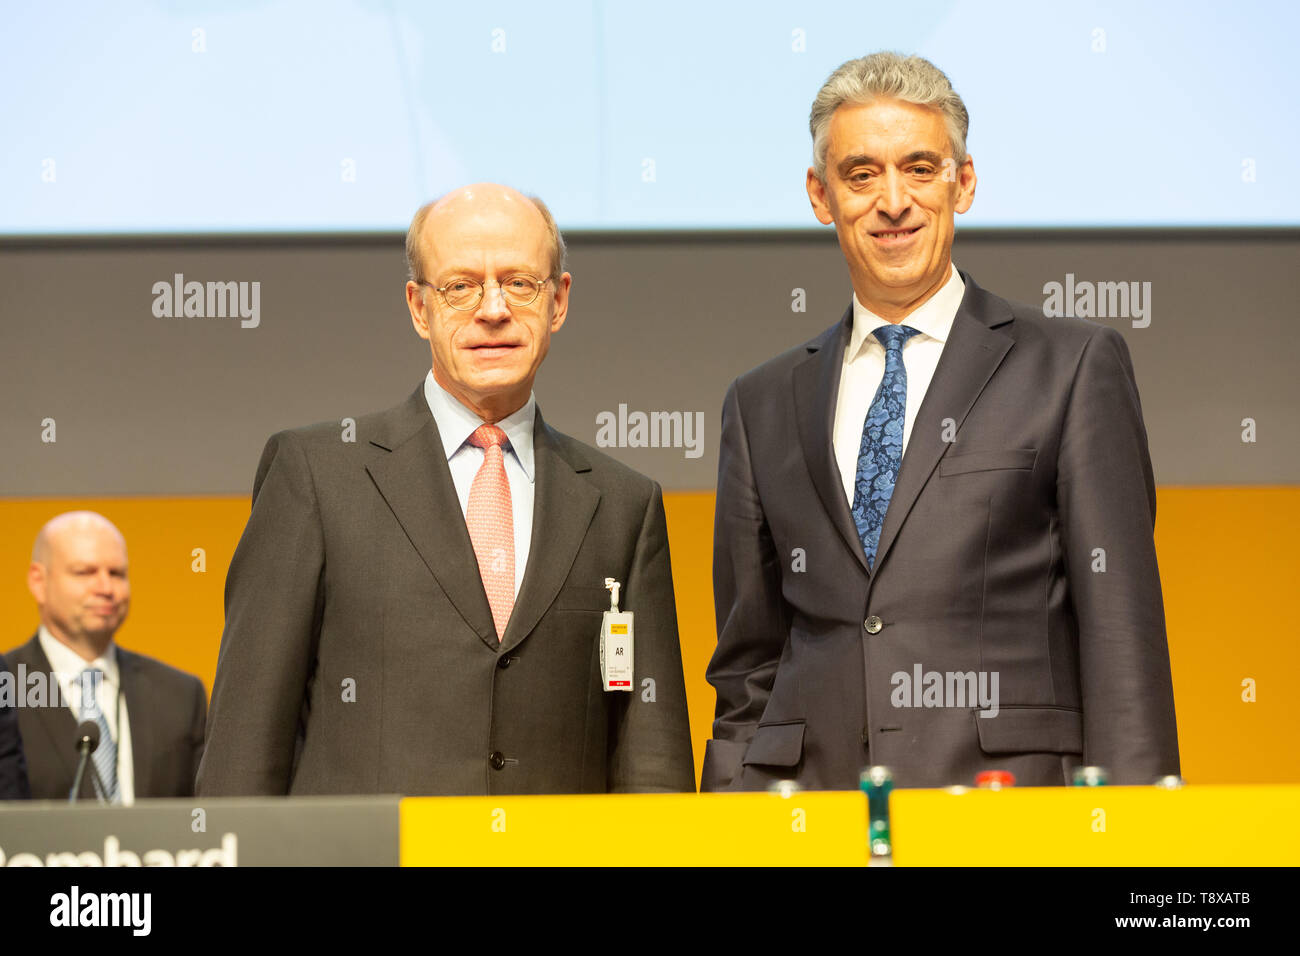 Bonn, Deutschland. 15th May, 2019. Germany, Bonn, May 5 2019, Deutsche Post DHL Annual General Meeting: Chairman of the supervisory board Nikolaus von Bomhard (L) and CEO Frank Appel. Credit: Juergen Schwarz/Alamy Live News - Stock Image